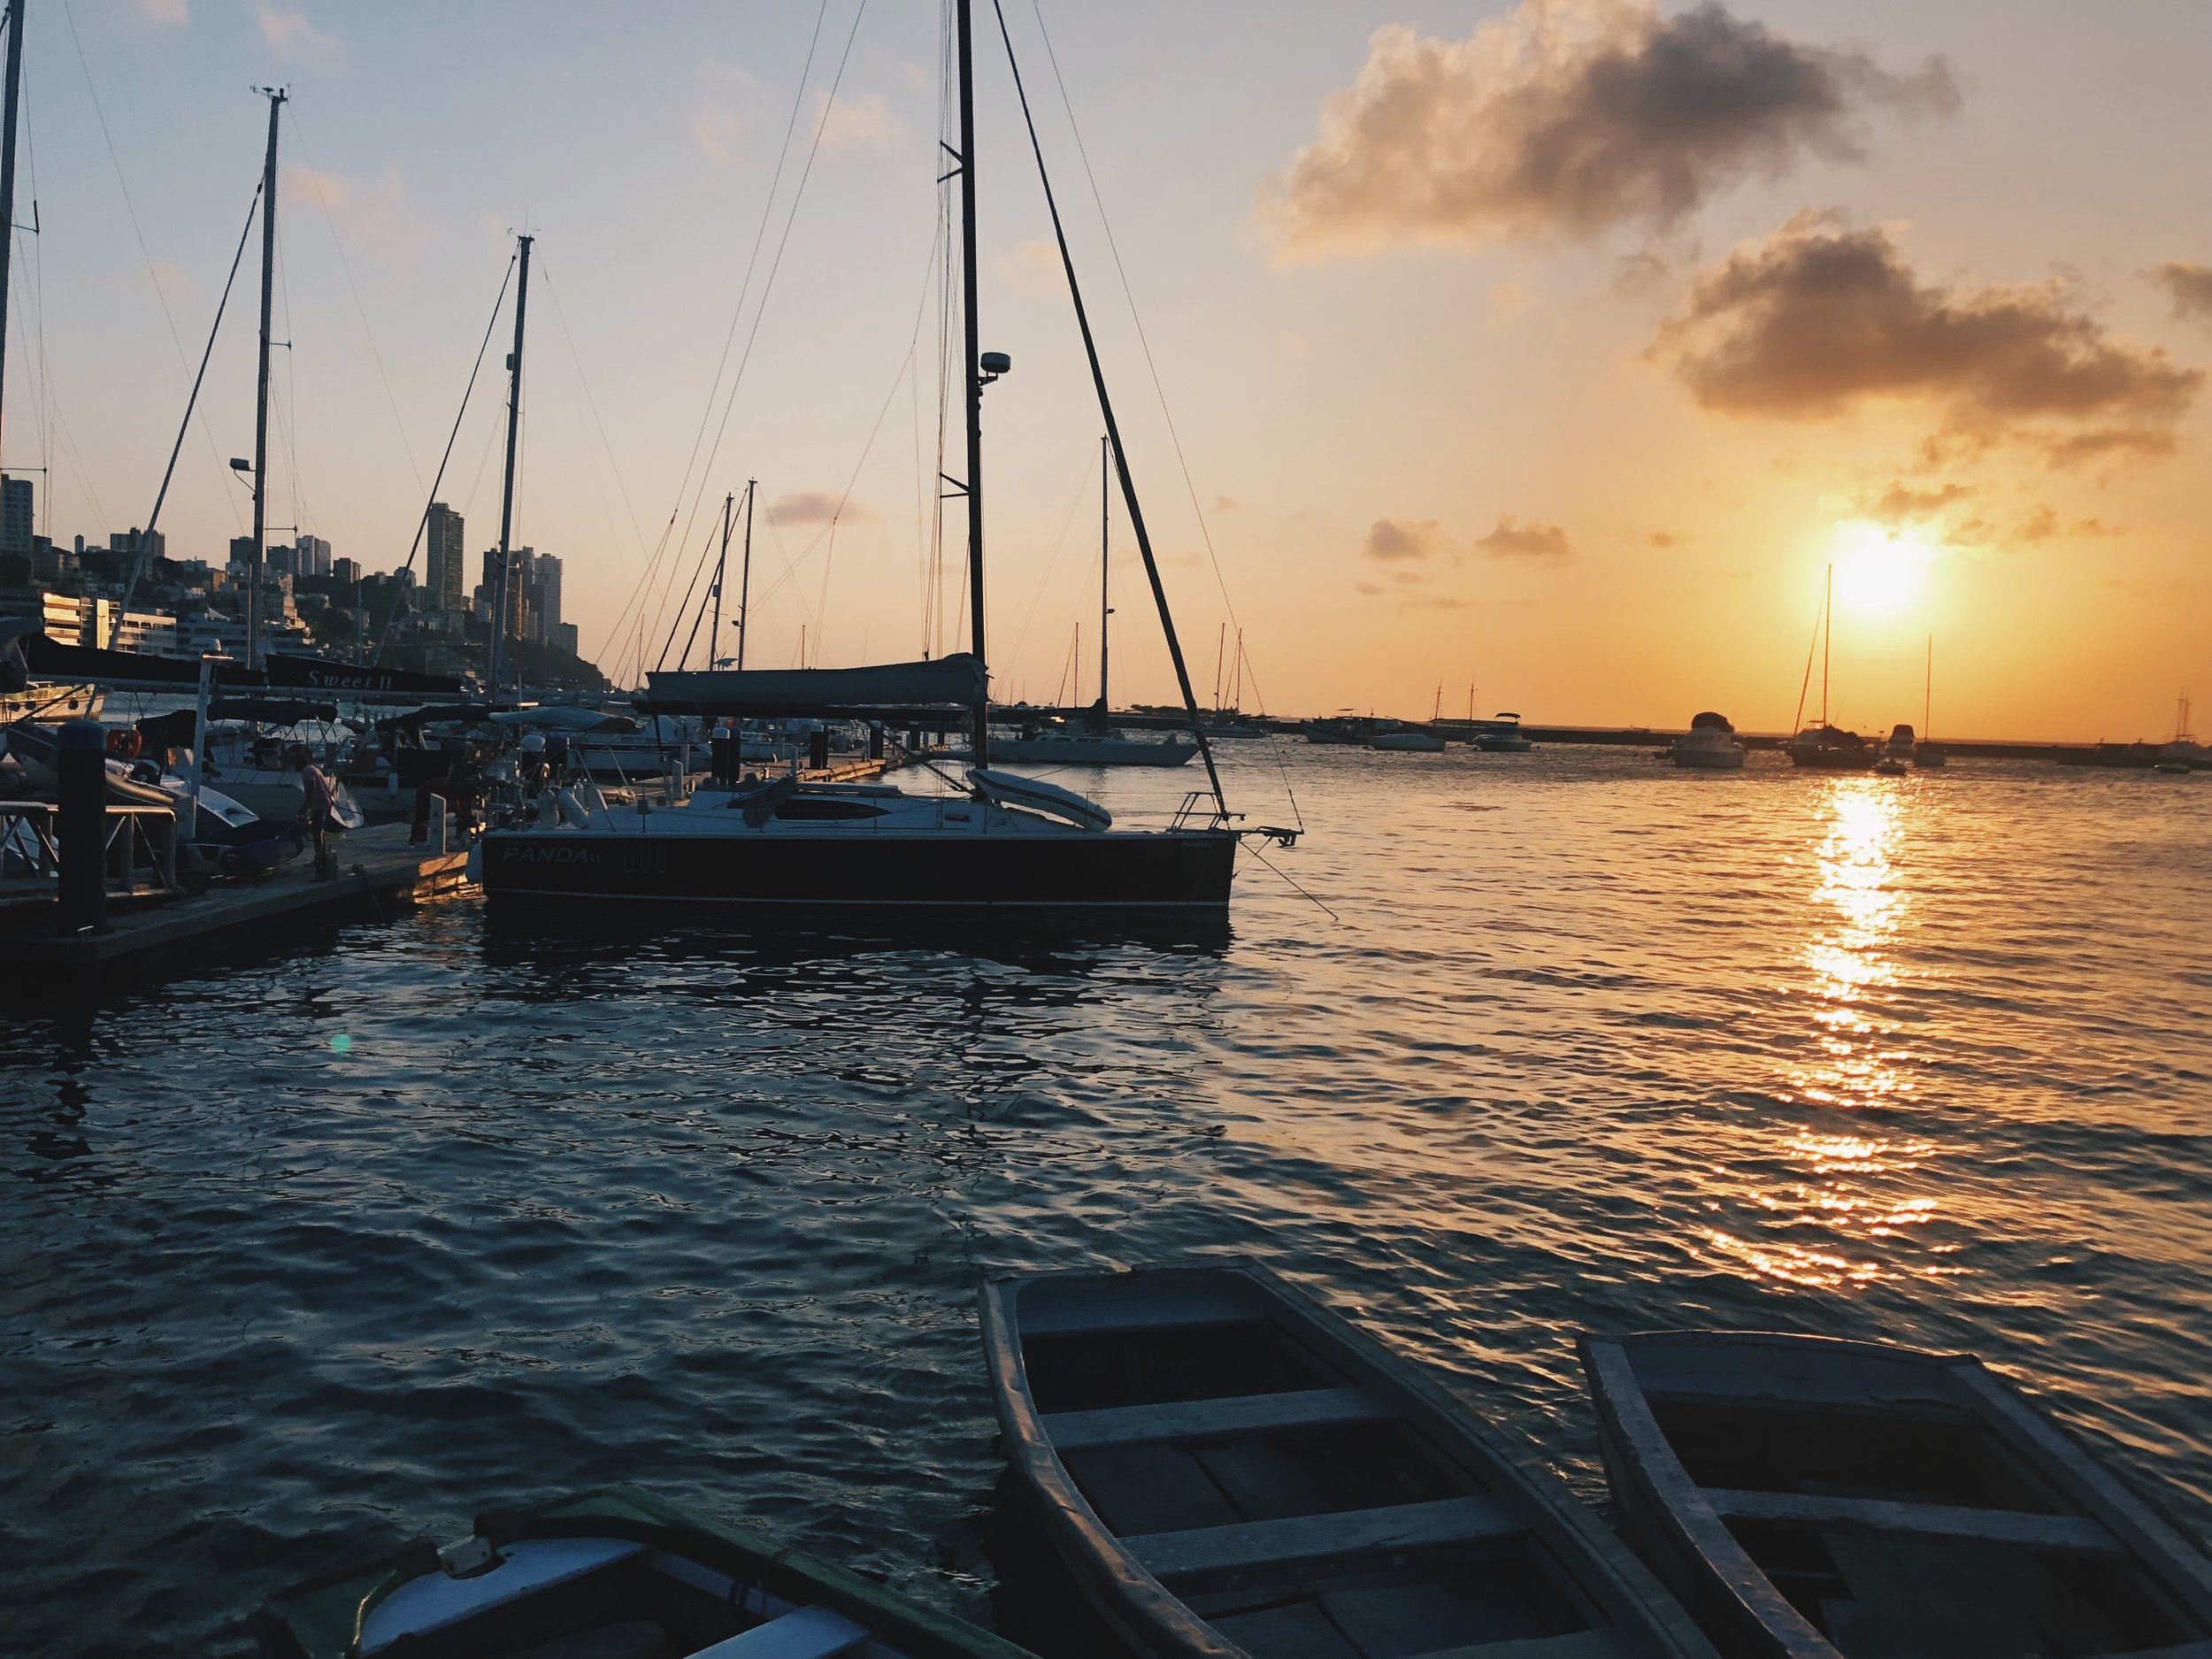 The sunset that welcomed us as we arrived in Salvador.